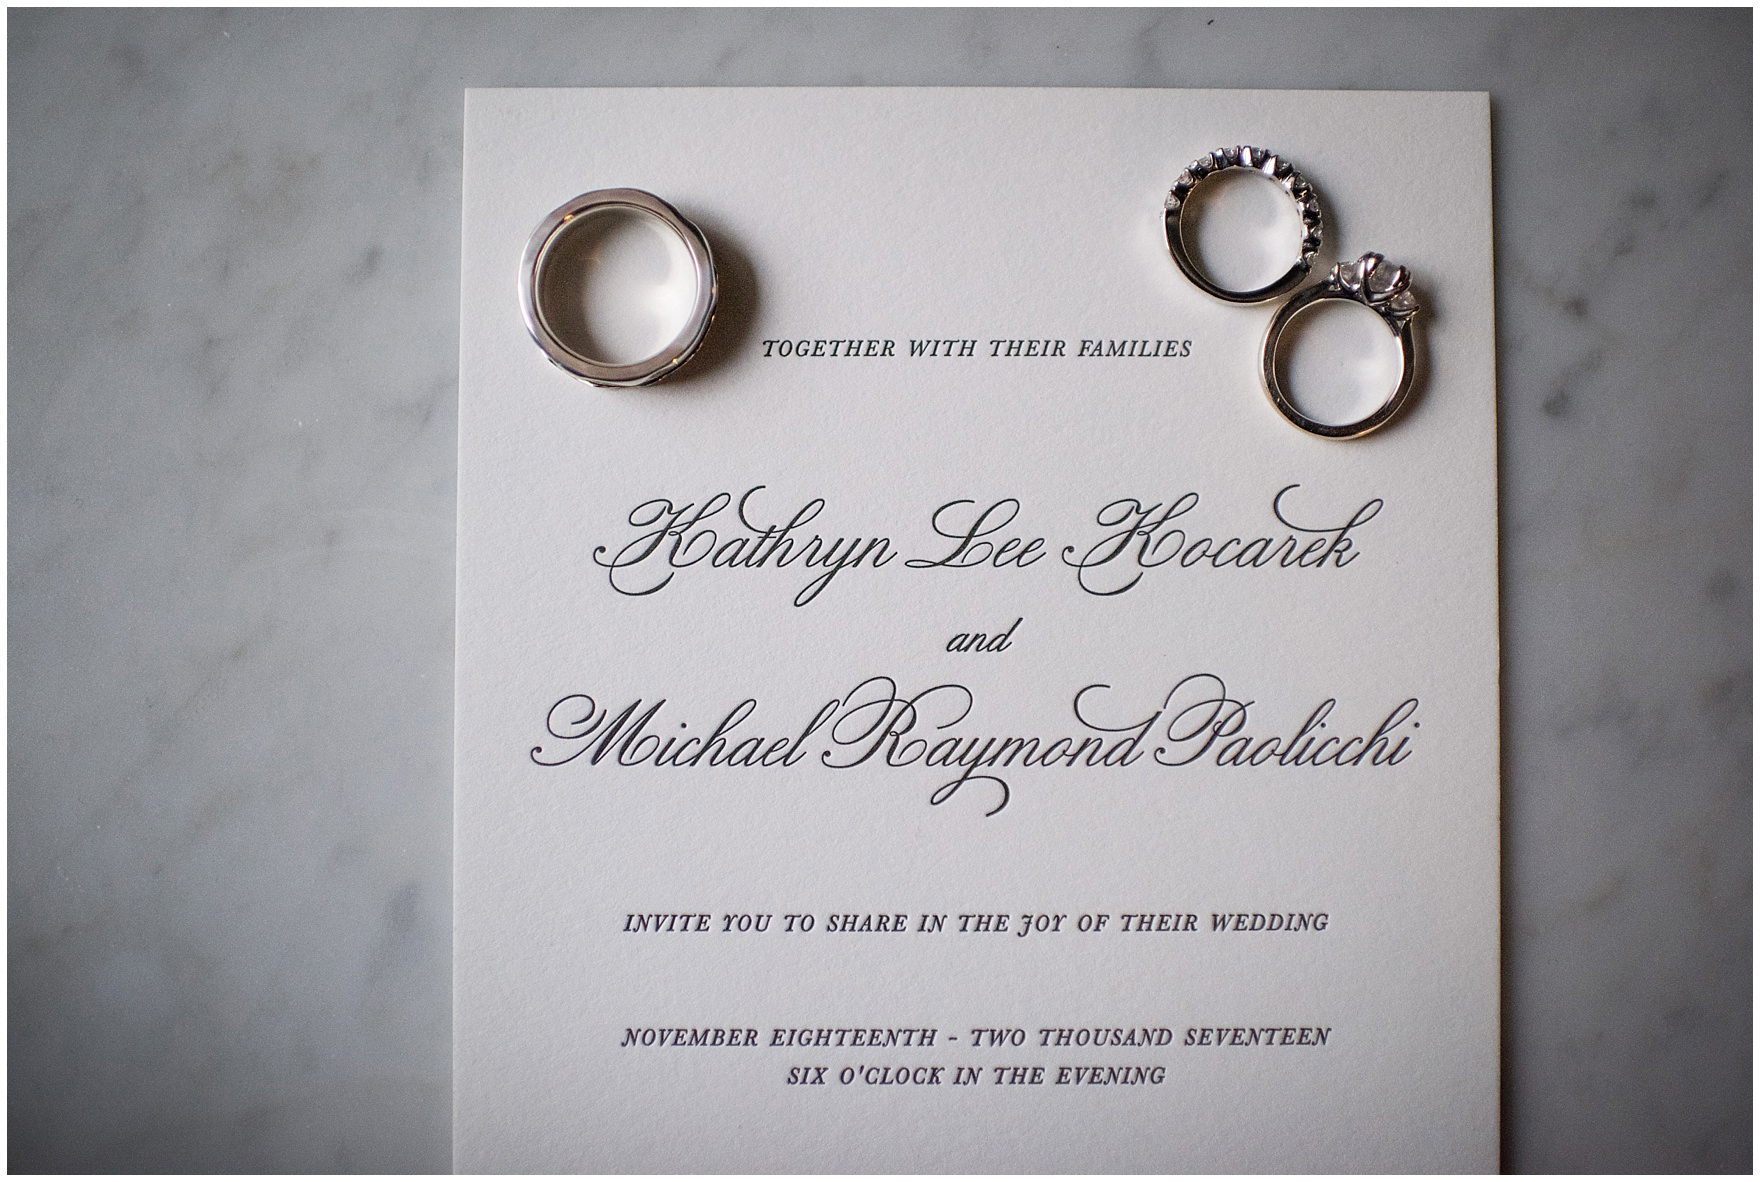 The wedding bands and engagement ring are photographed on a letterpress wedding invitation for a Newberry Library Chicago wedding.